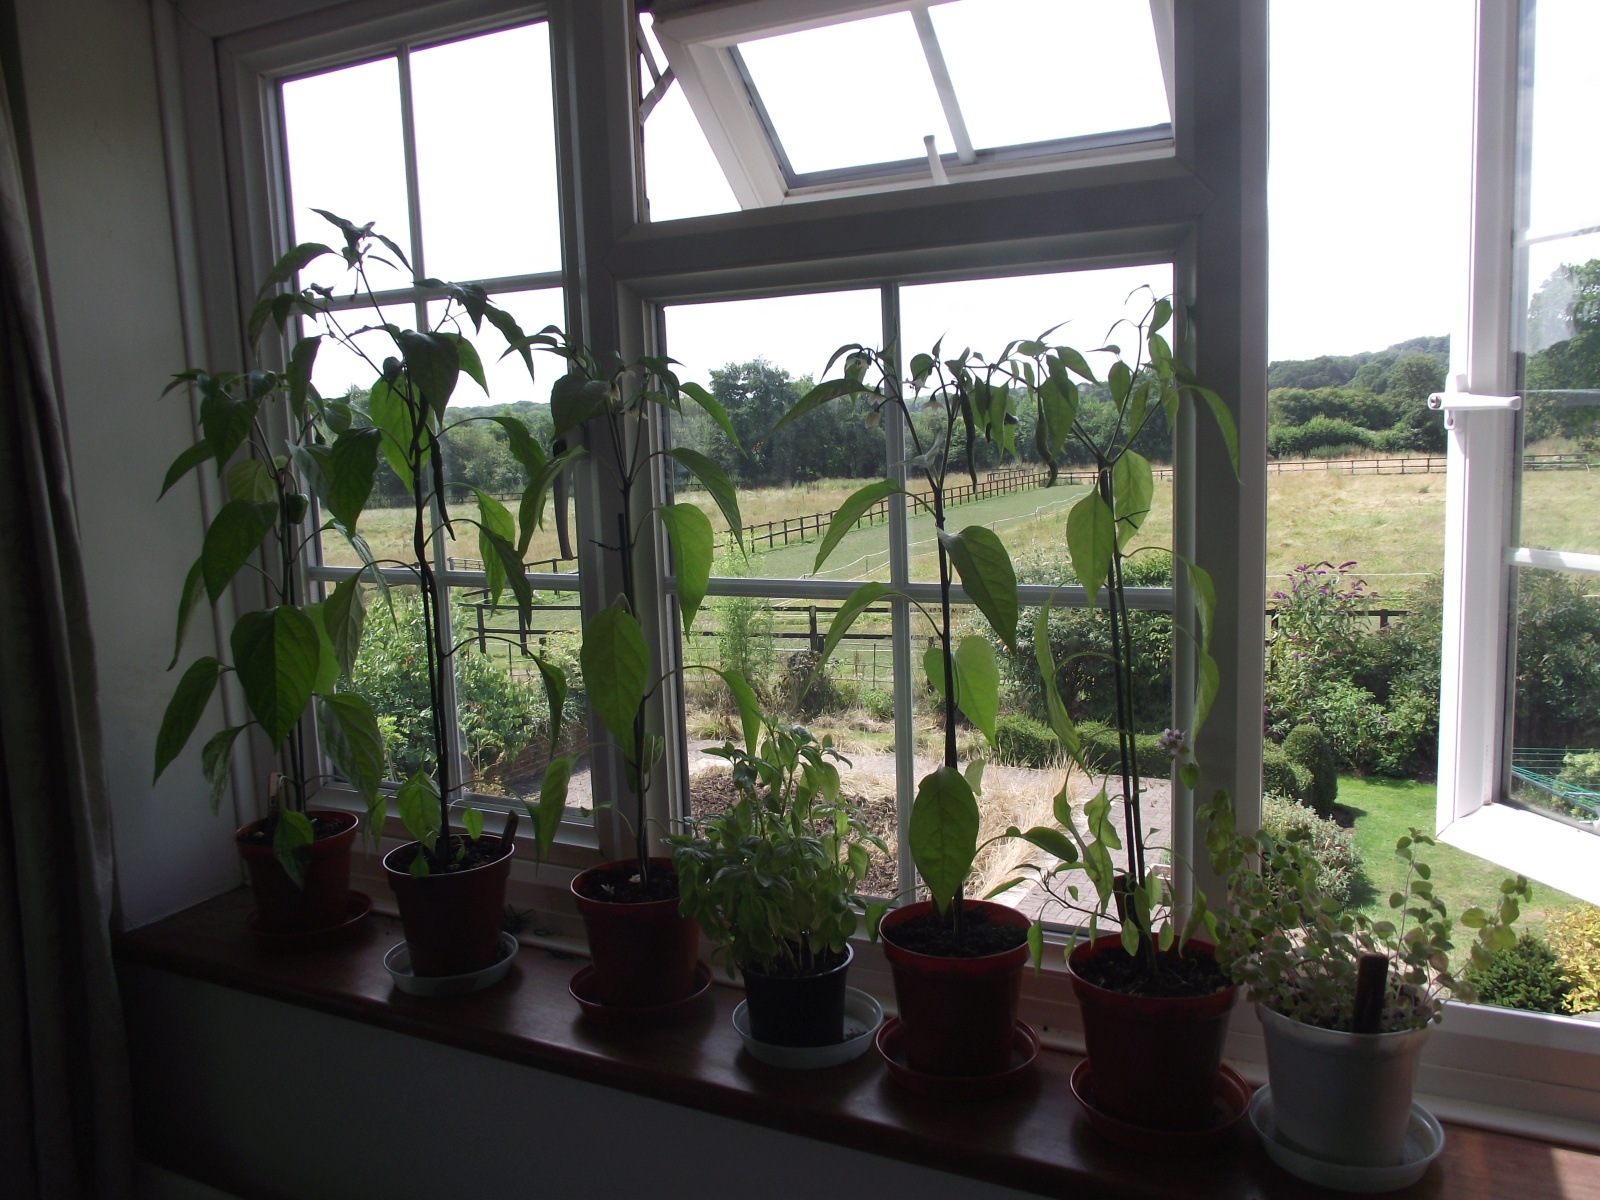 Collection of chilli plants